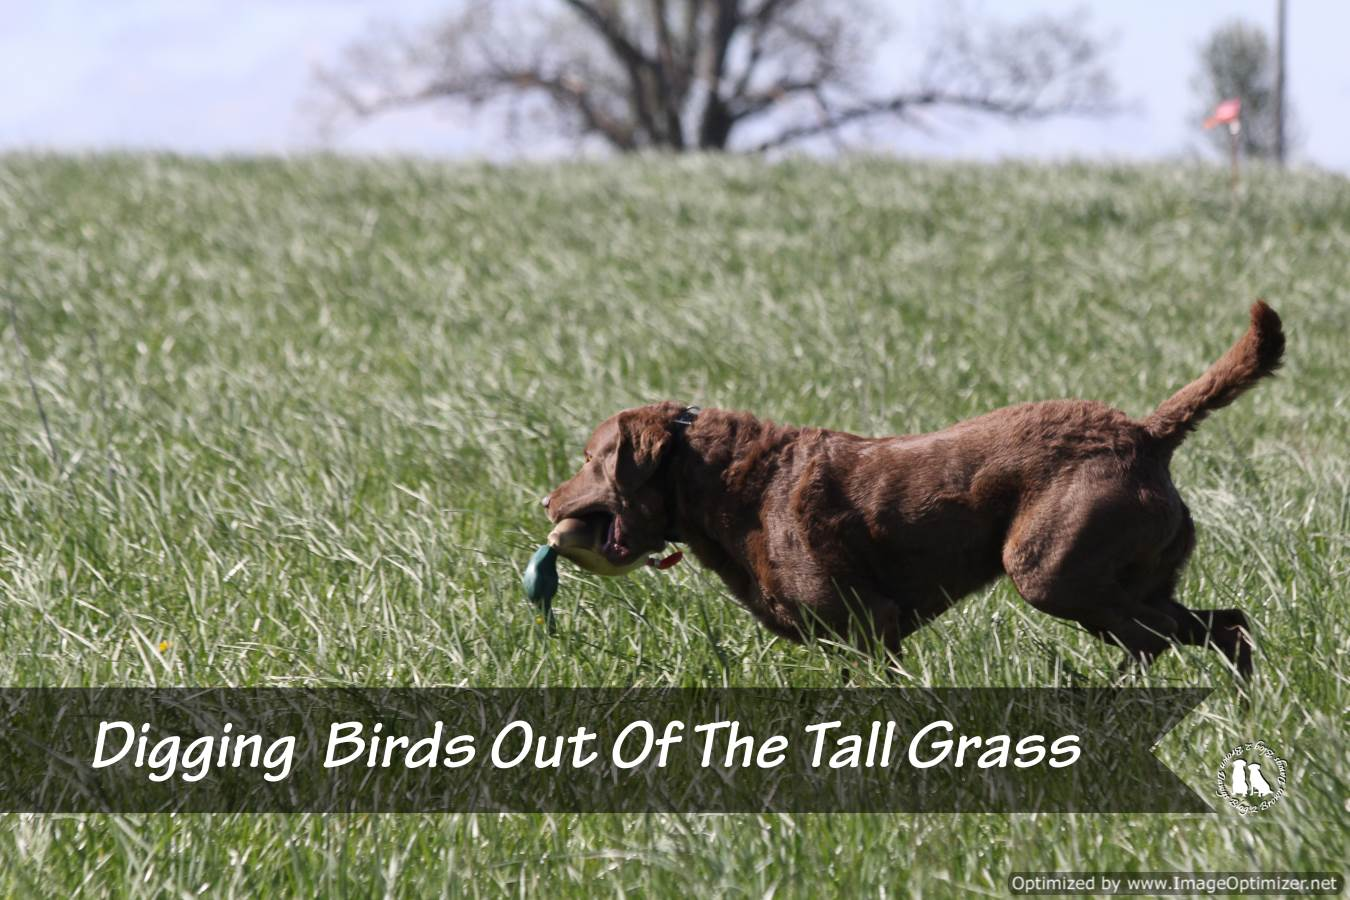 Digging Birds Out Of The Tall Grass